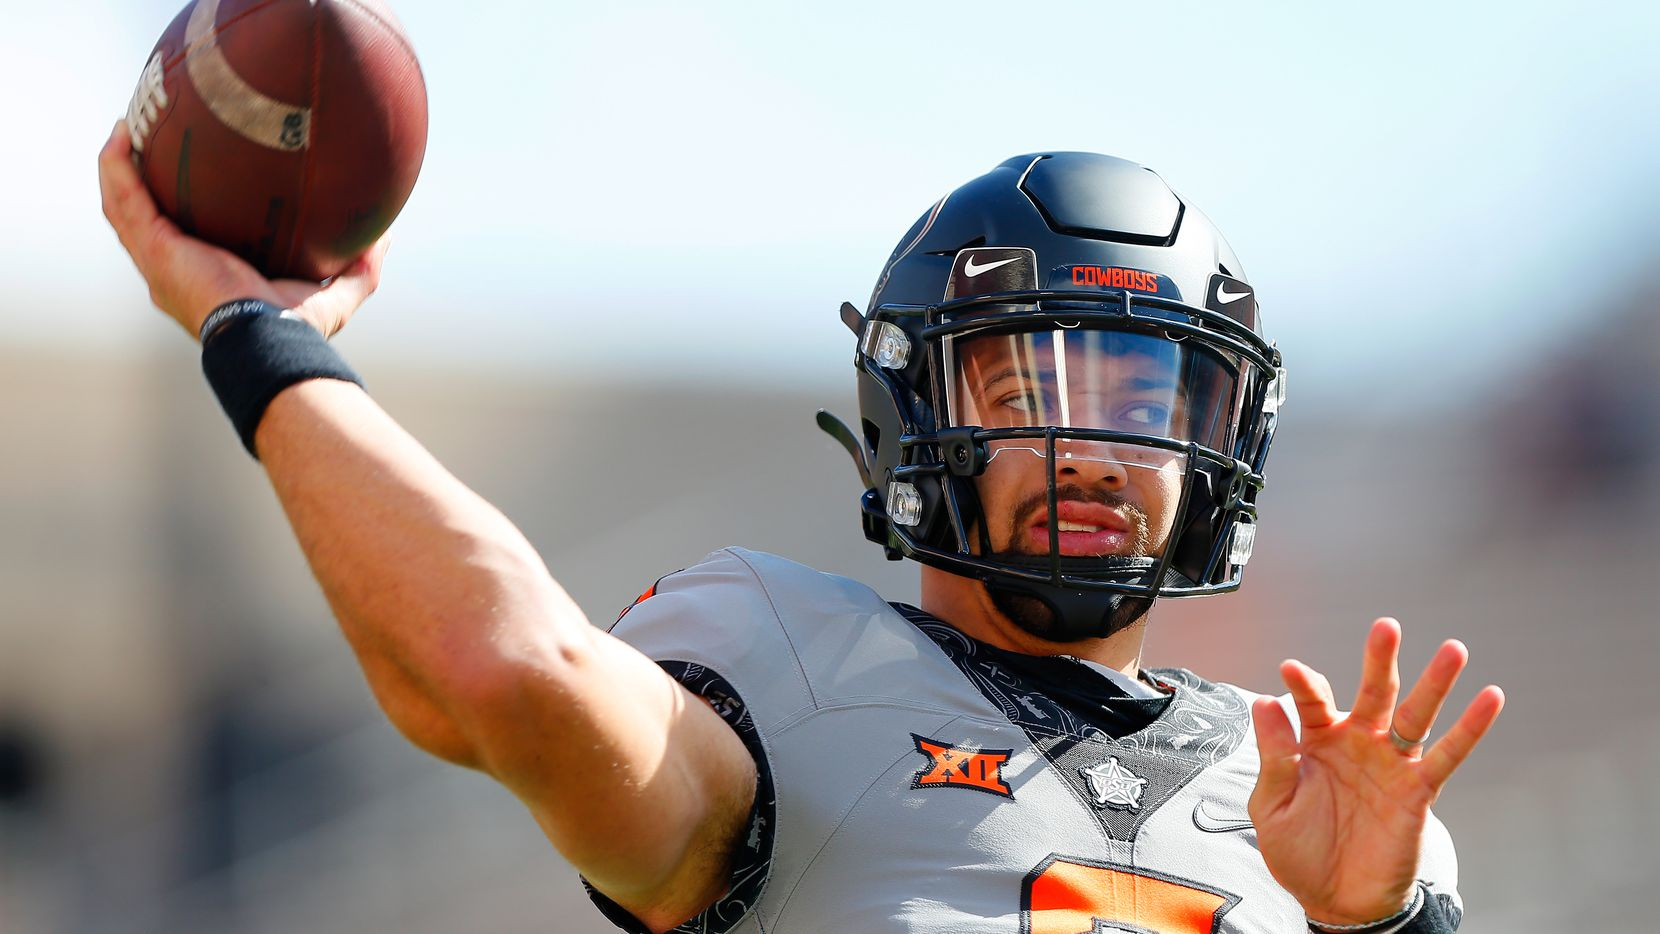 STILLWATER, OK - OCTOBER 24:  Quarterback Spencer Sanders #3 of the Oklahoma State Cowboys throws before a game against the Iowa State Cyclones at Boone Pickens Stadium on October 24, 2020 in Stillwater, Oklahoma.  (Photo by Brian Bahr/Getty Images)